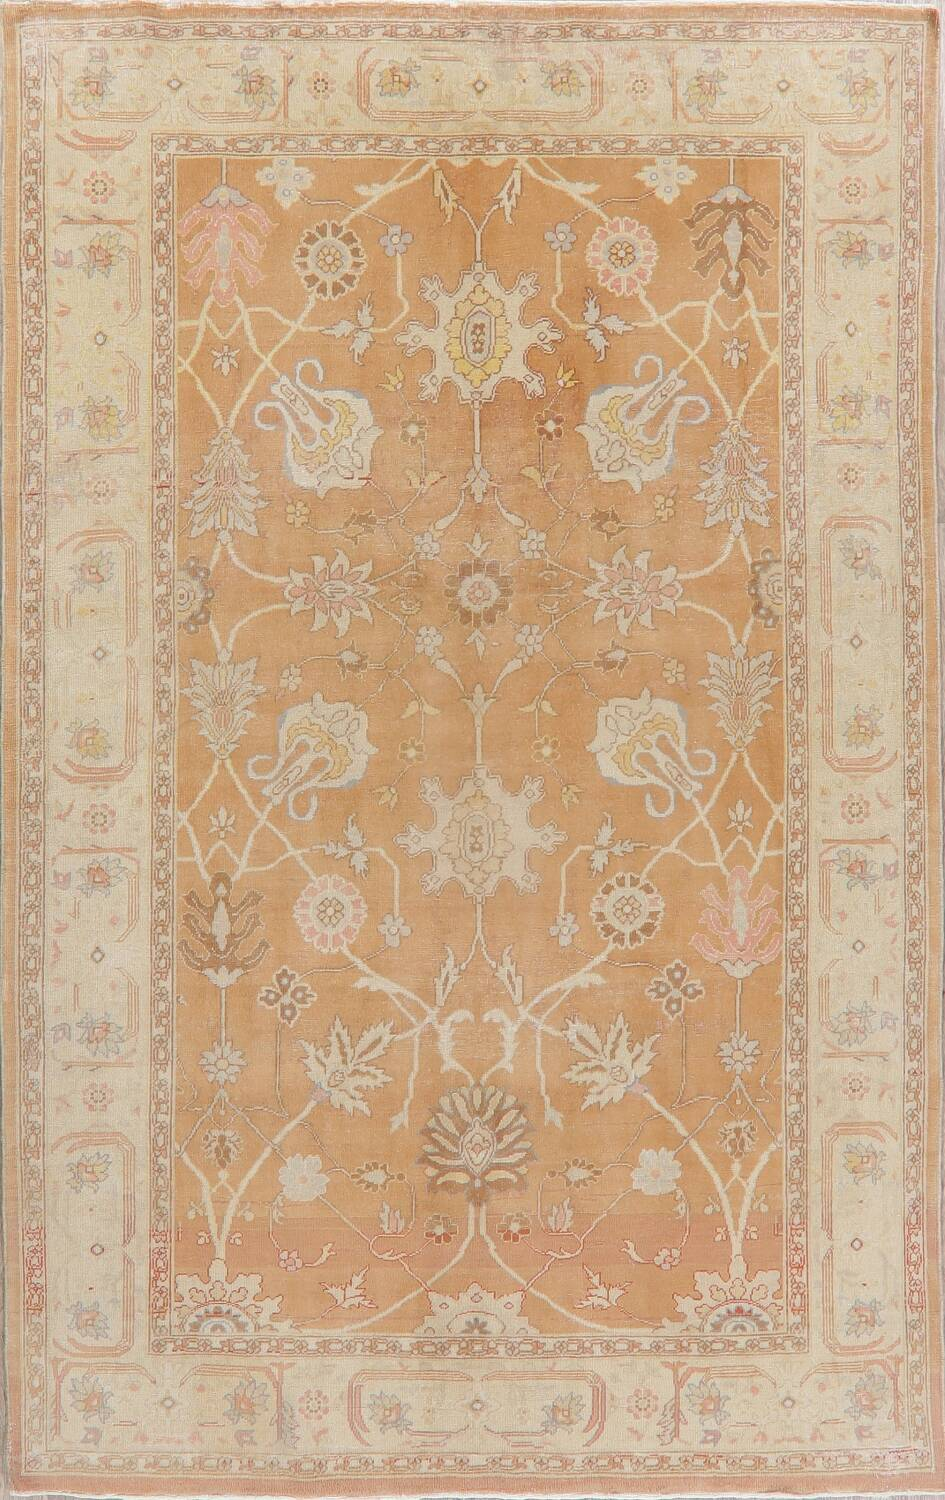 Vegetable Dye Rust Oushak Egyptian Area Rug 6x9 image 1